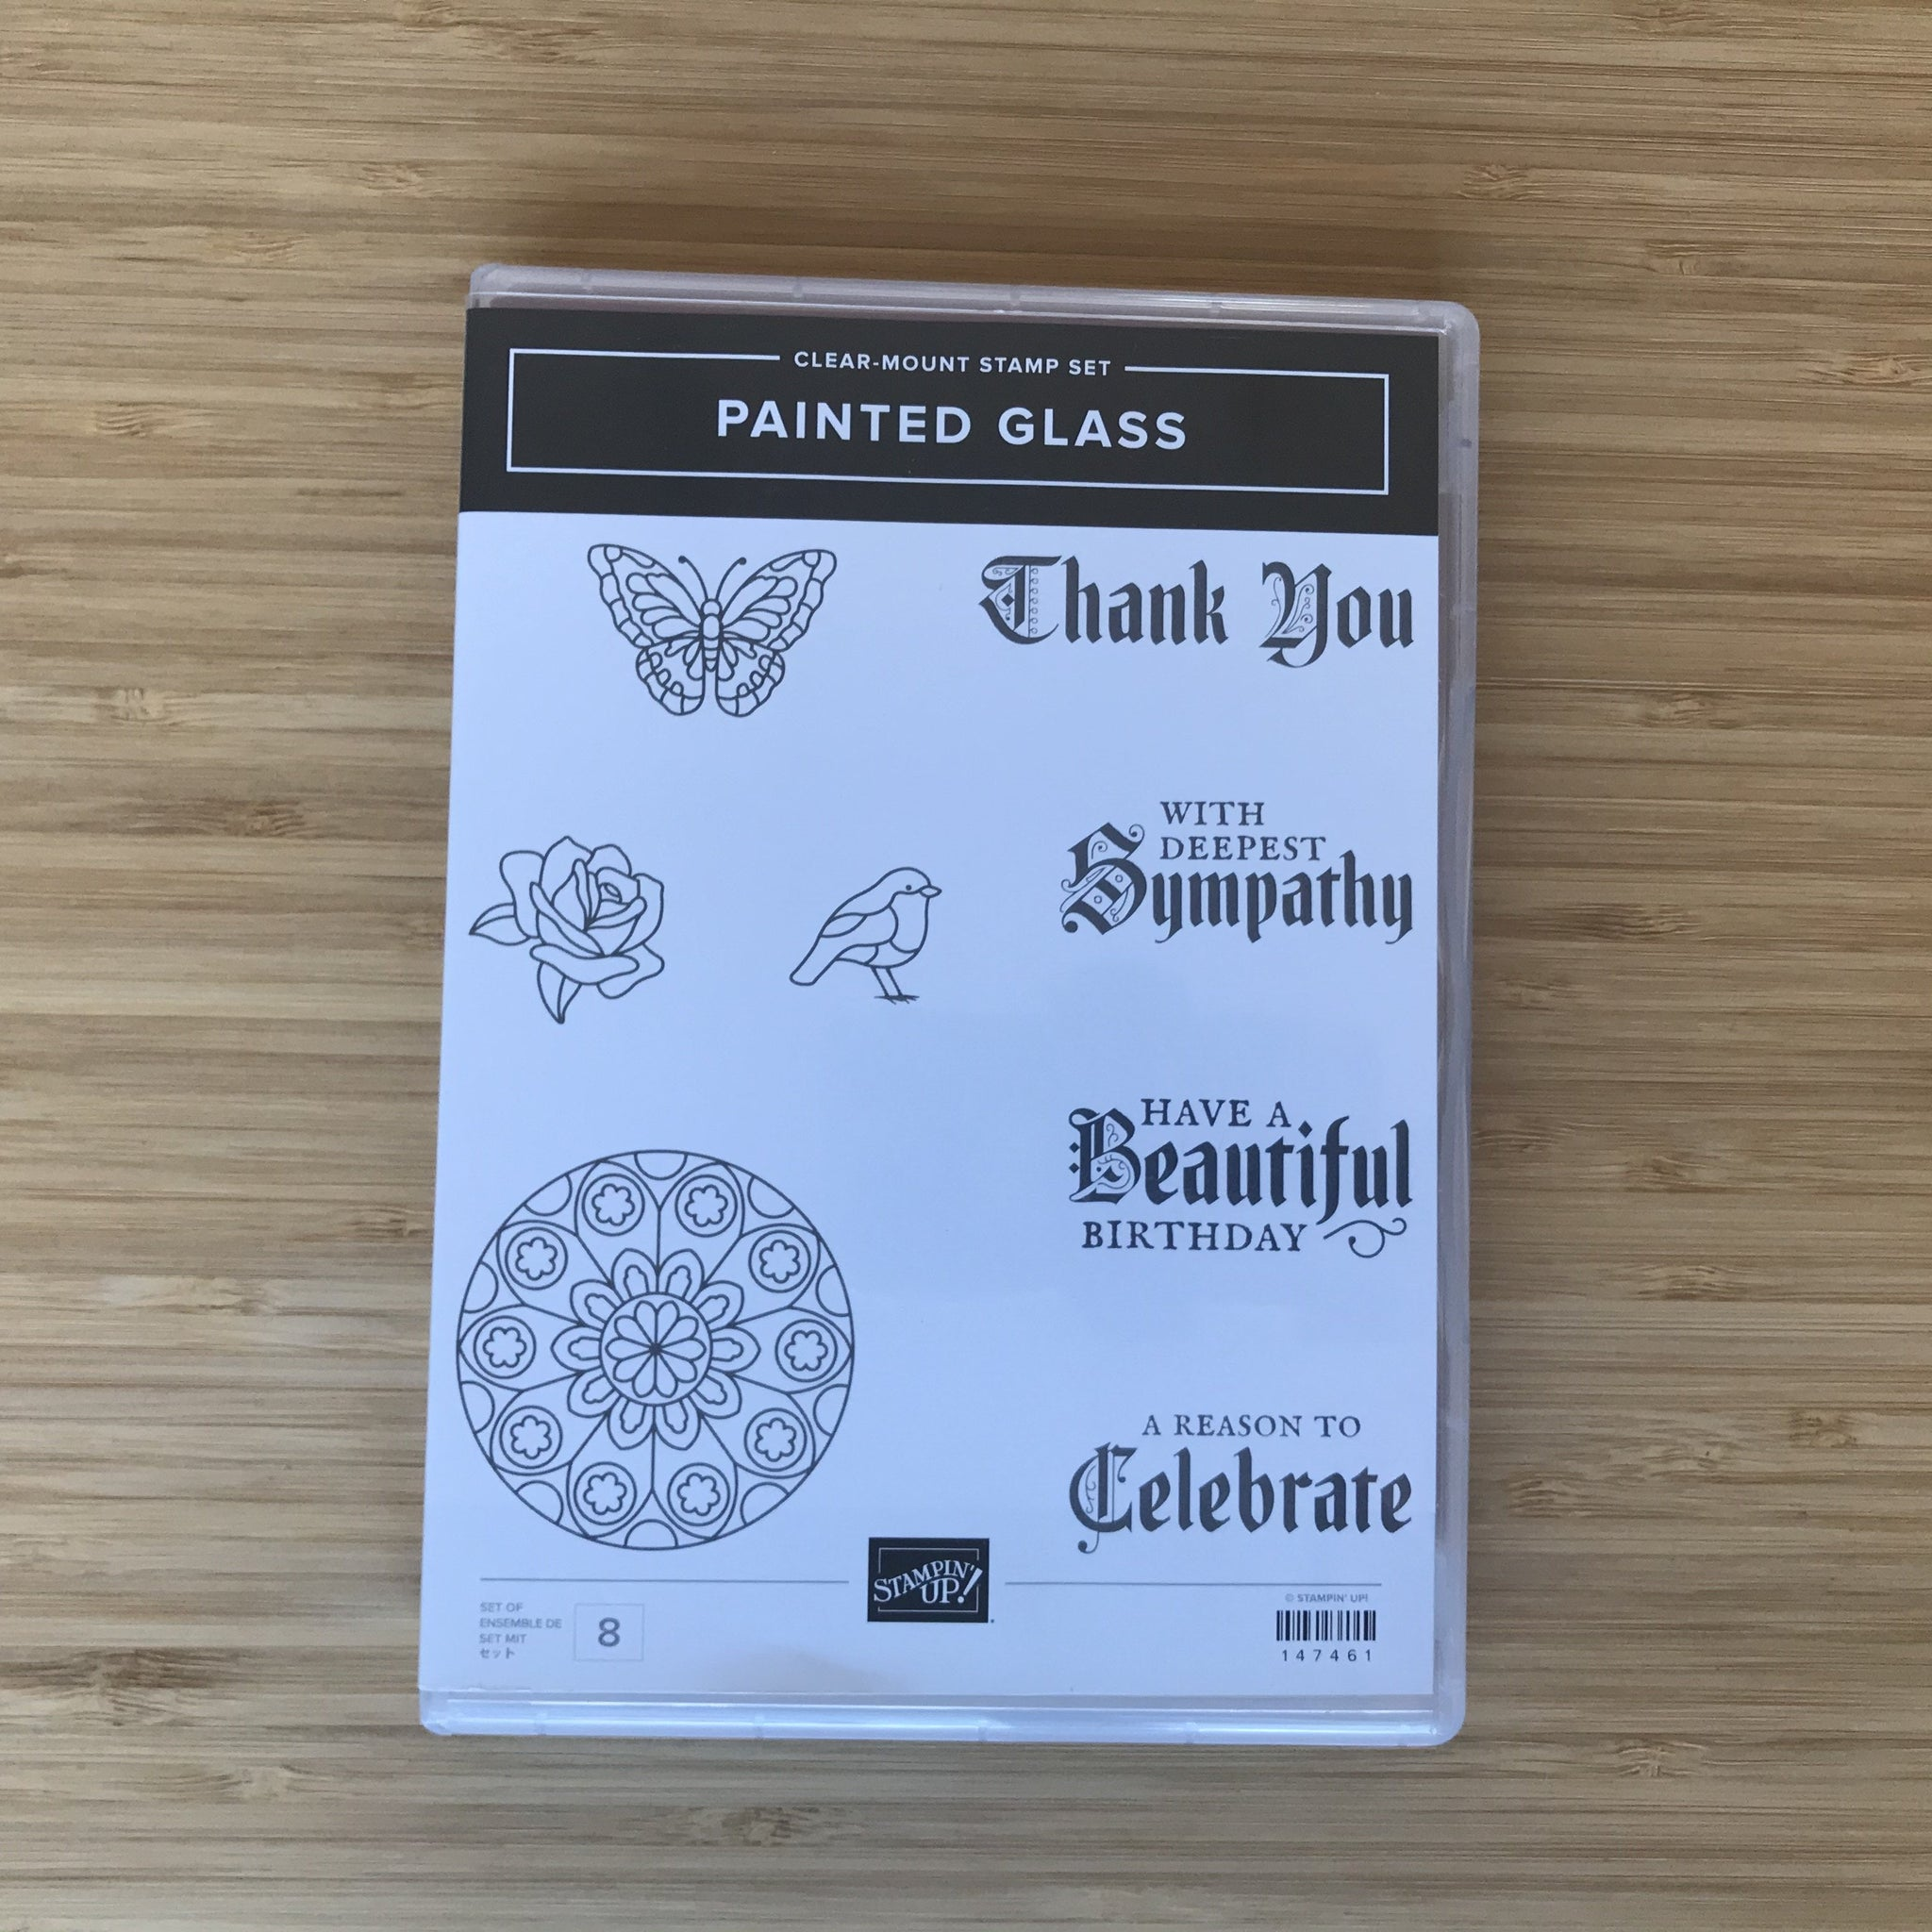 Painted Glass | Retired Clear-Mount Stamp Set & Dies | Stampin' Up!®